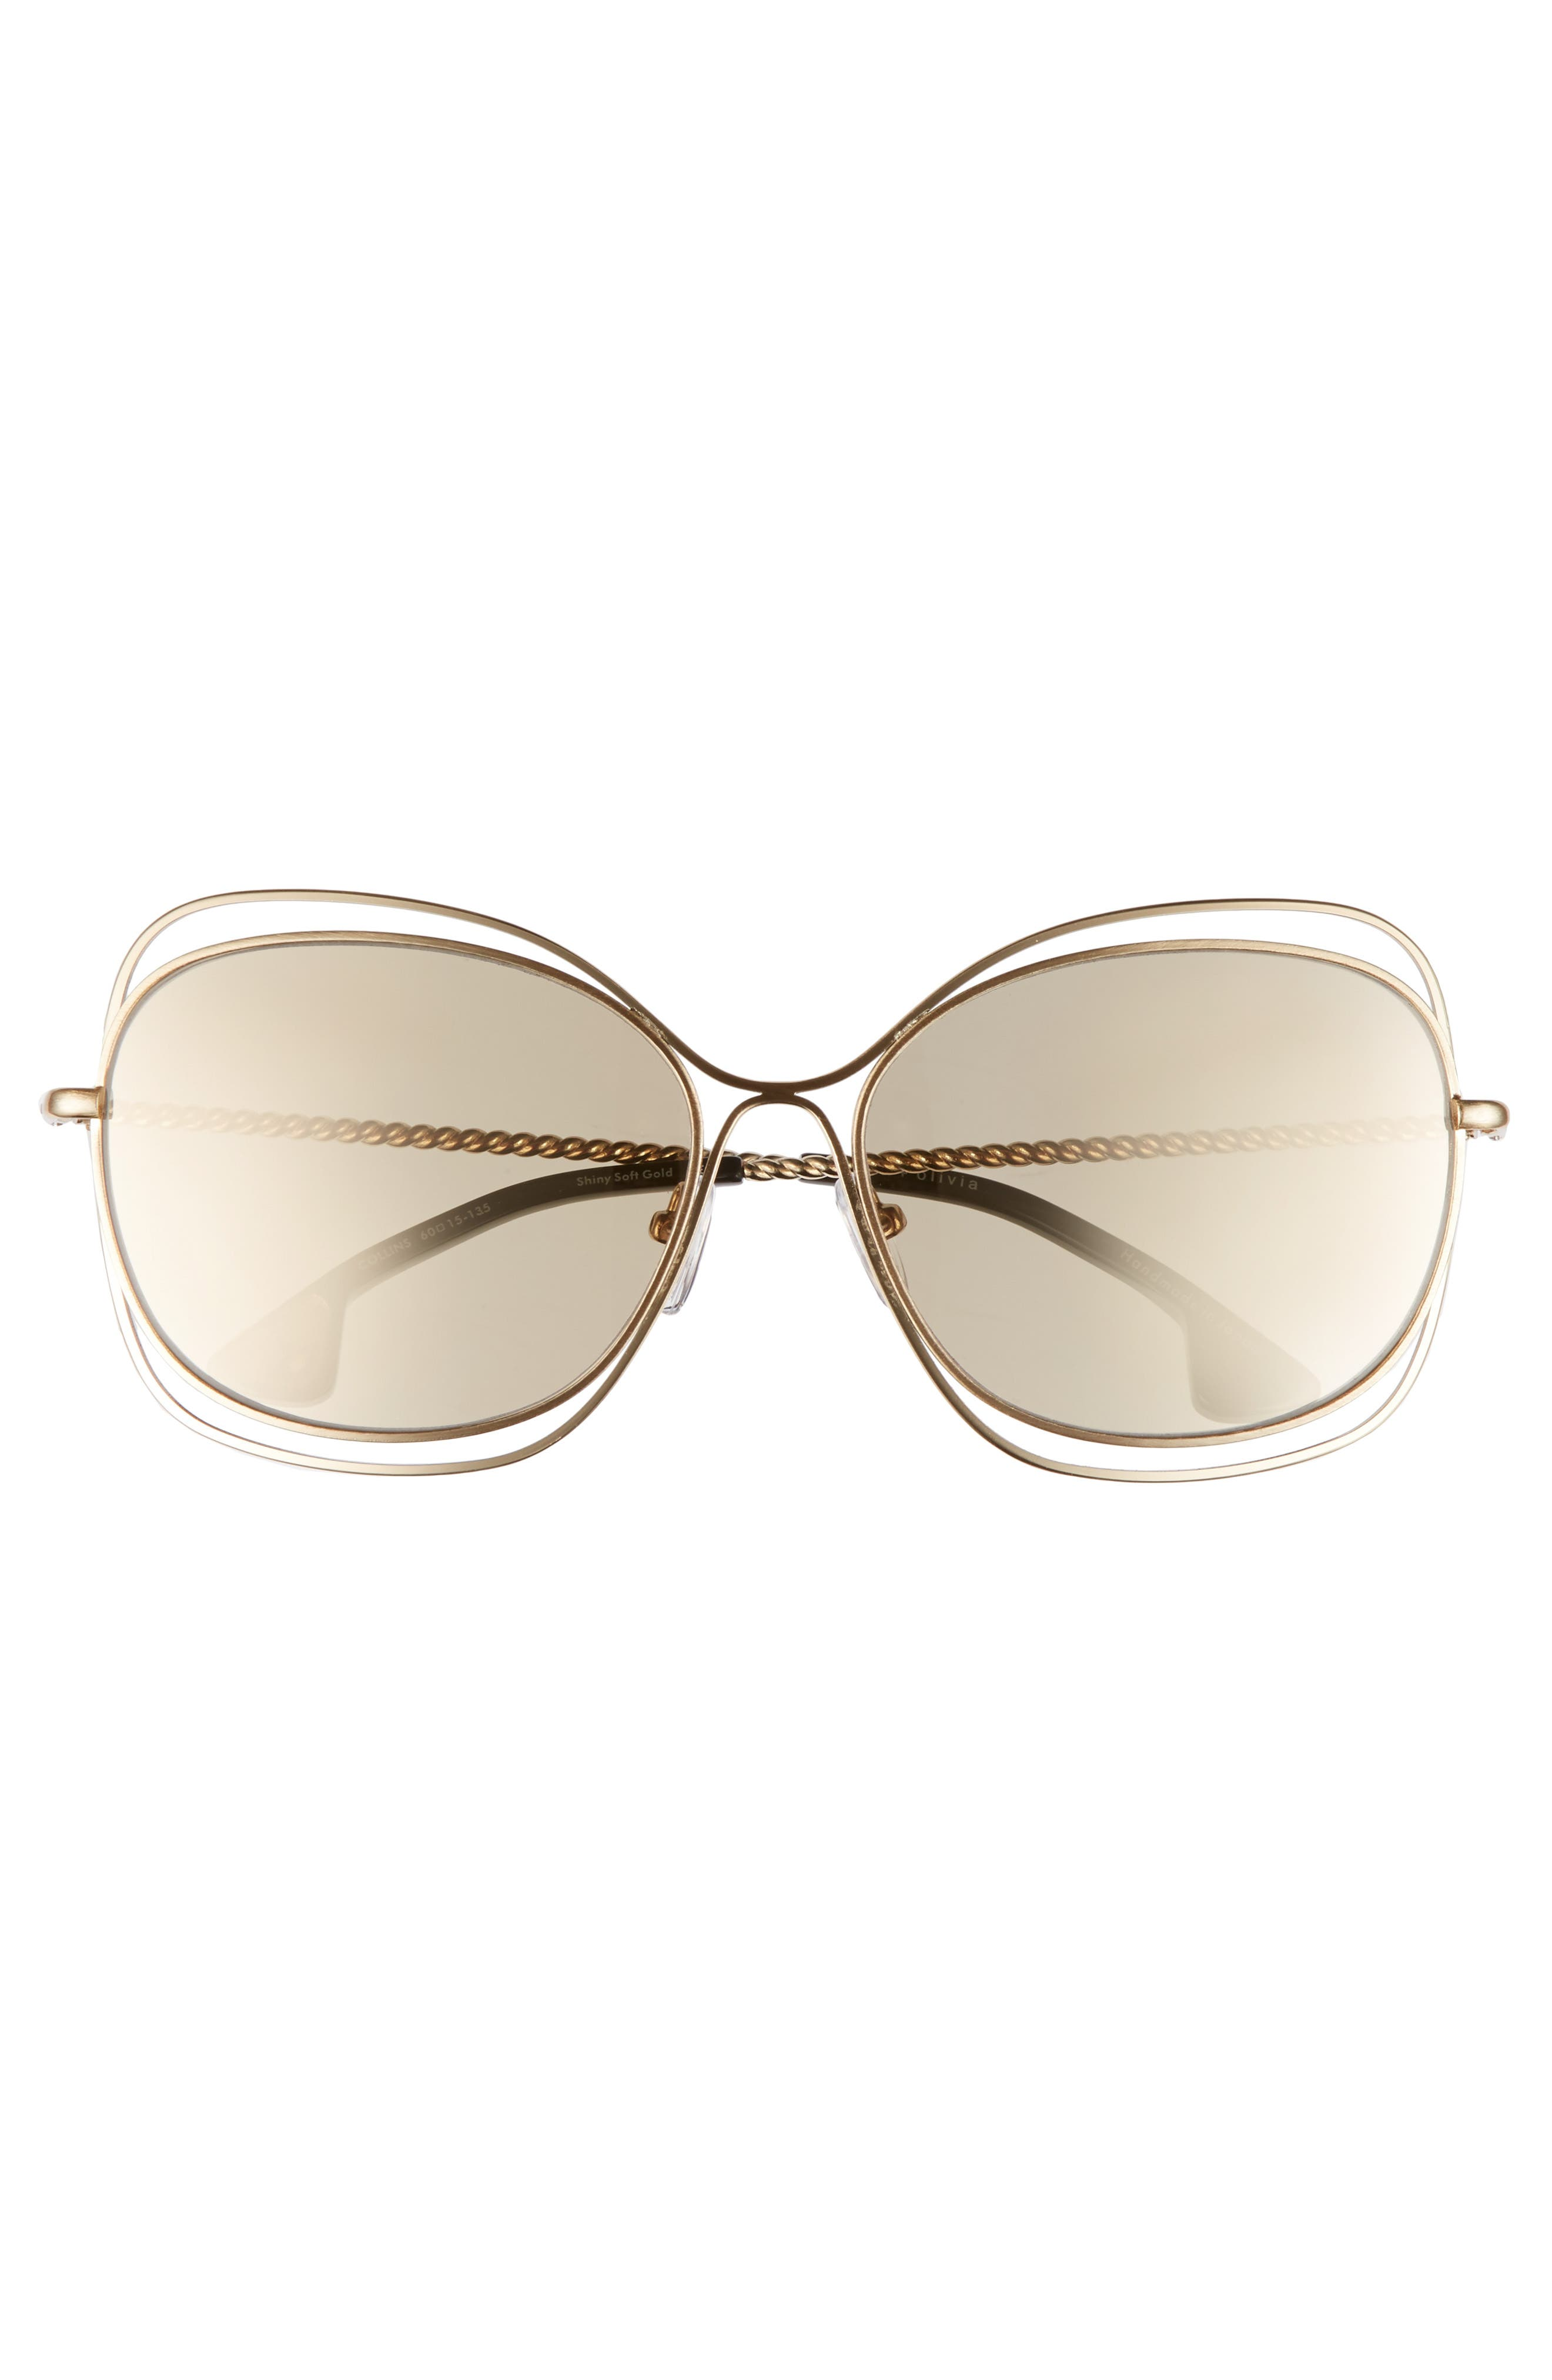 Collins 60mm Butterfly Sunglasses,                             Alternate thumbnail 3, color,                             Soft Gold